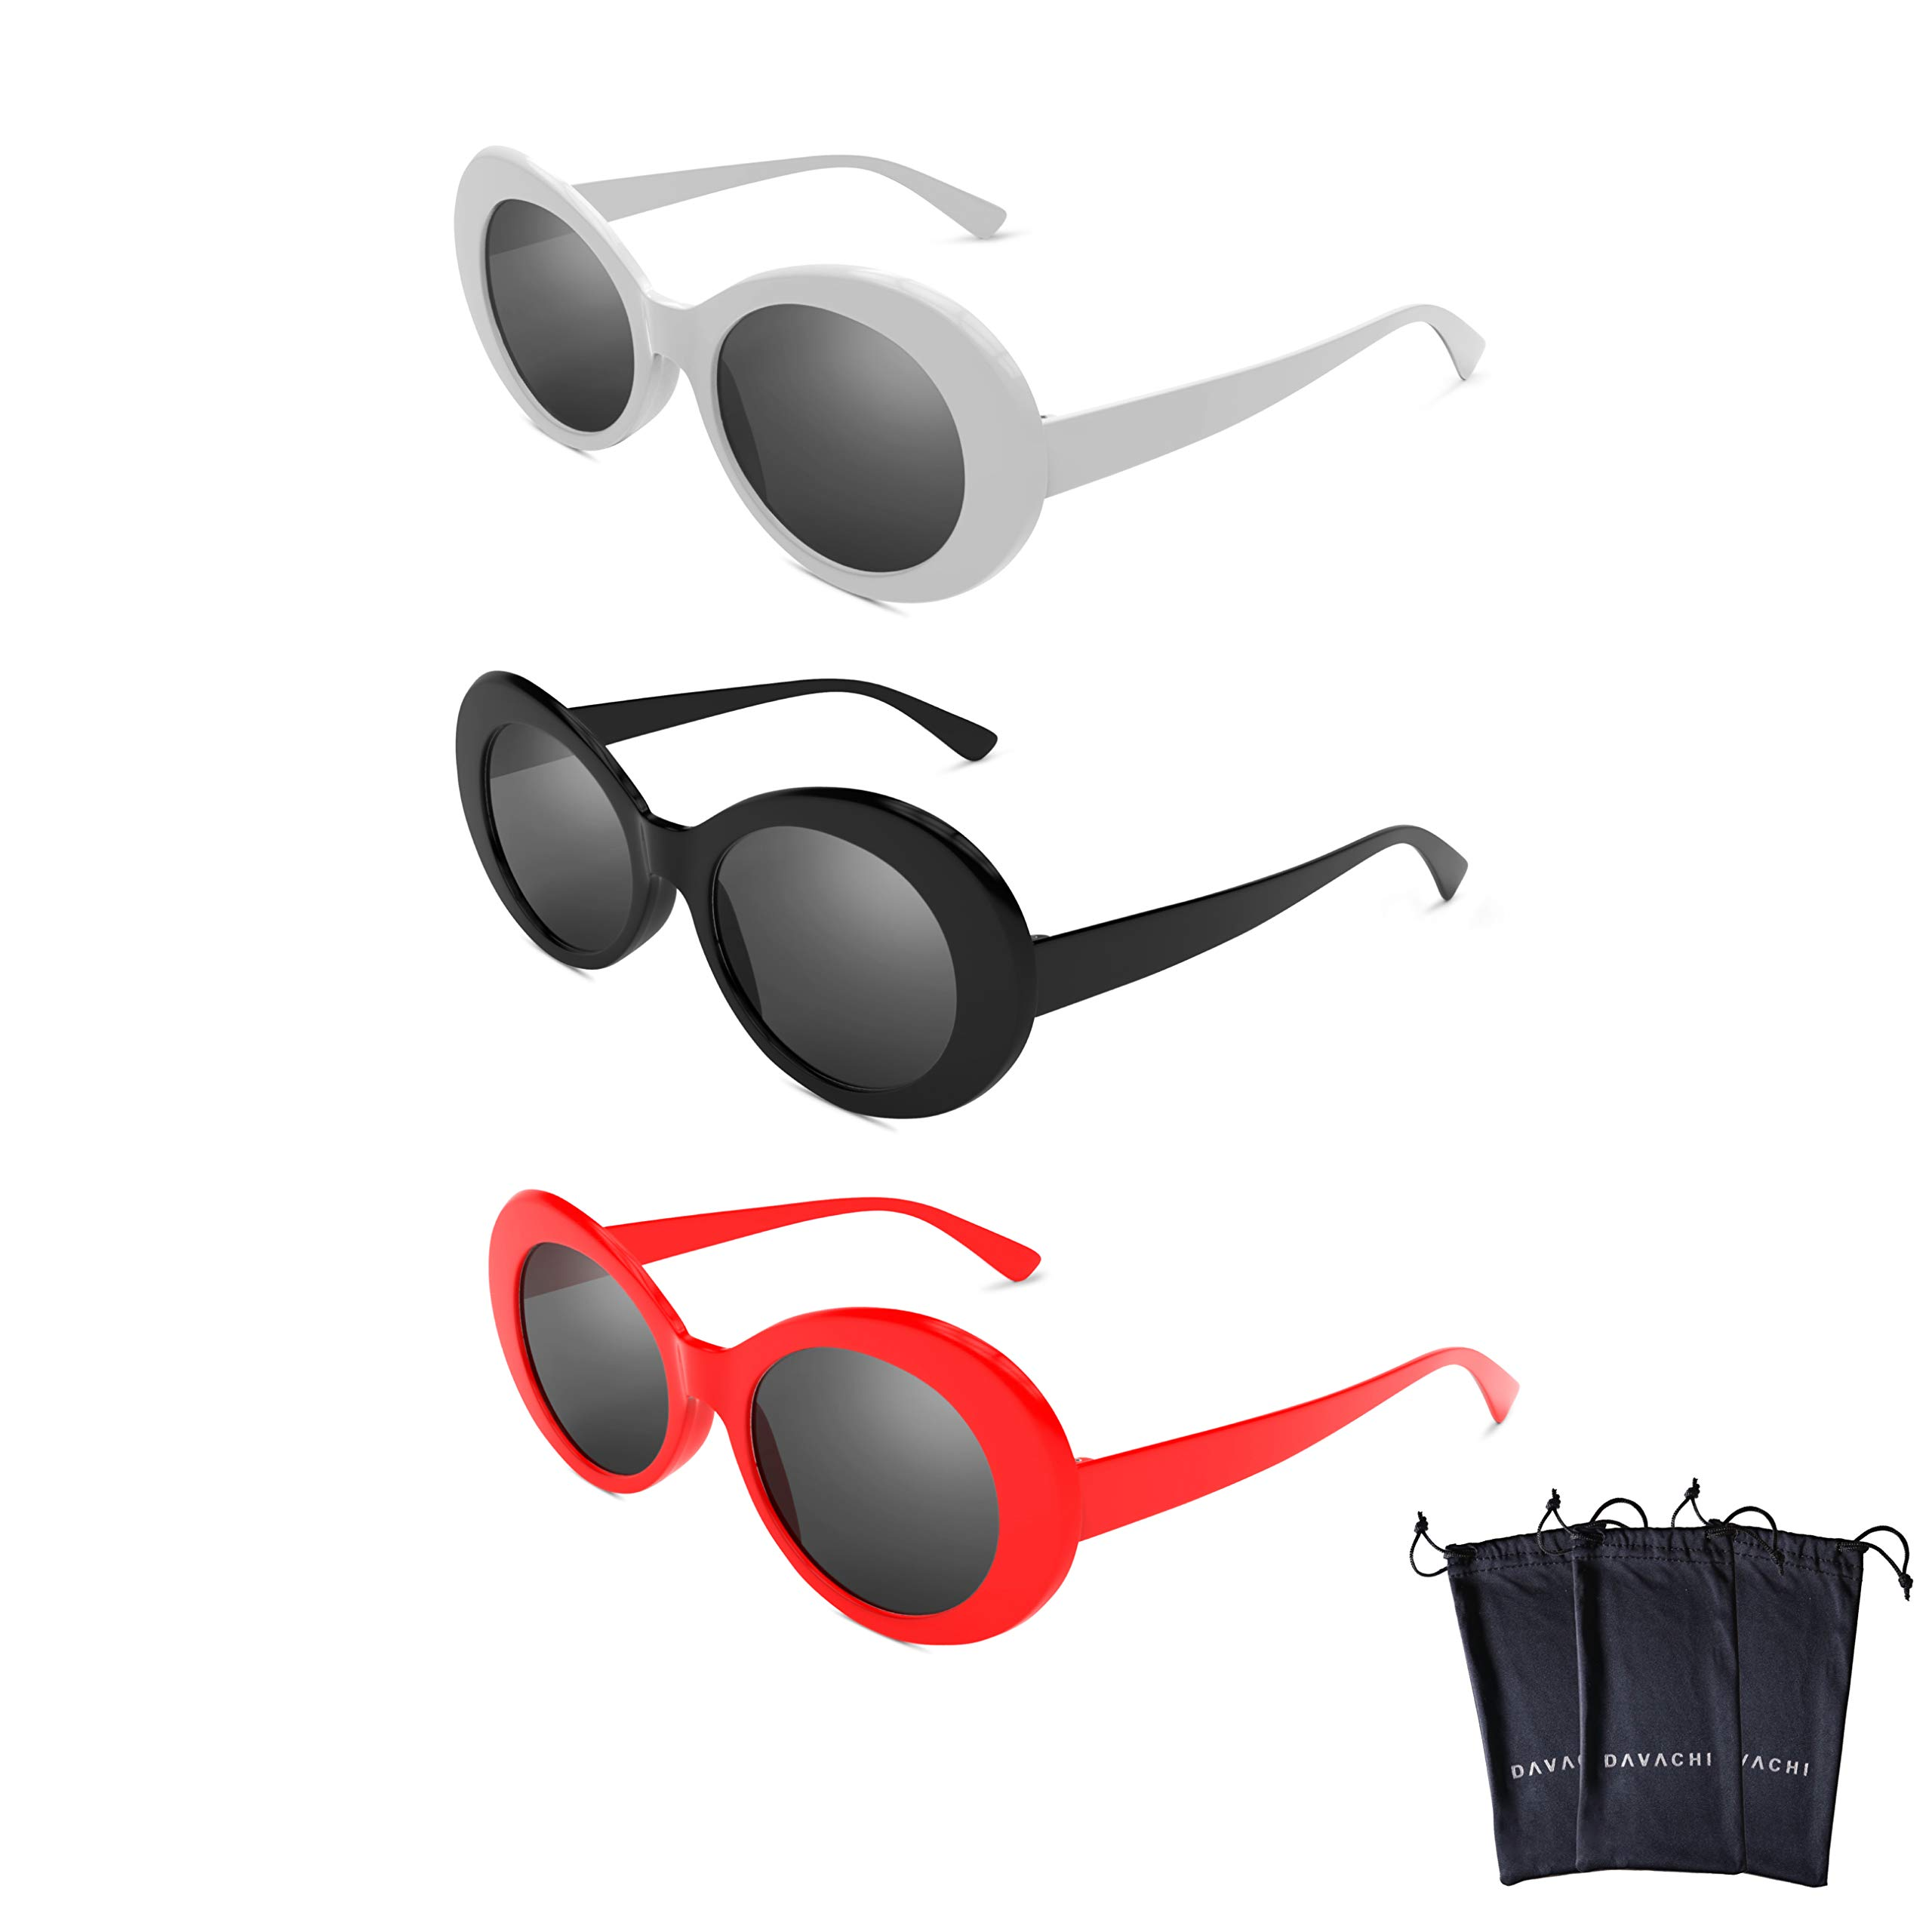 Hype N Clout Clout Goggles Set With Soft Cases- Kurt Cobain Oval Sunglasses White, Black, Red